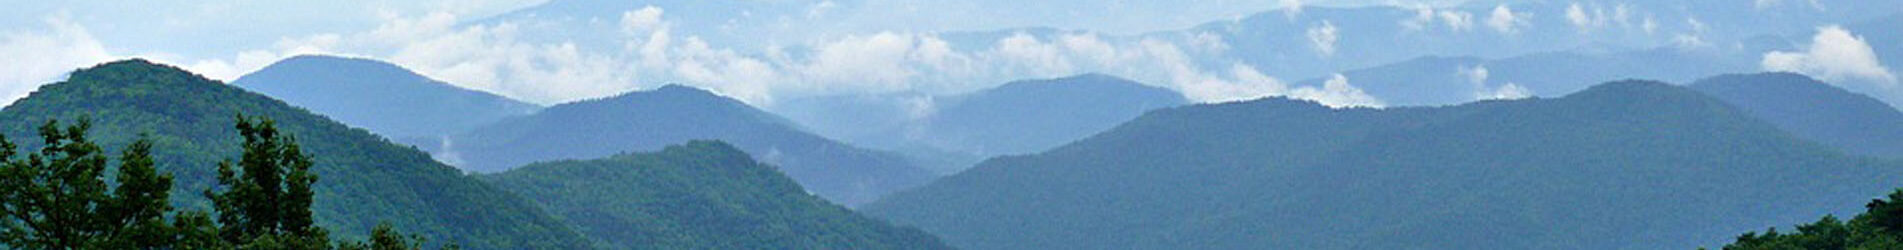 cropped-blue-ridge-2809942_960_720v2.jpg